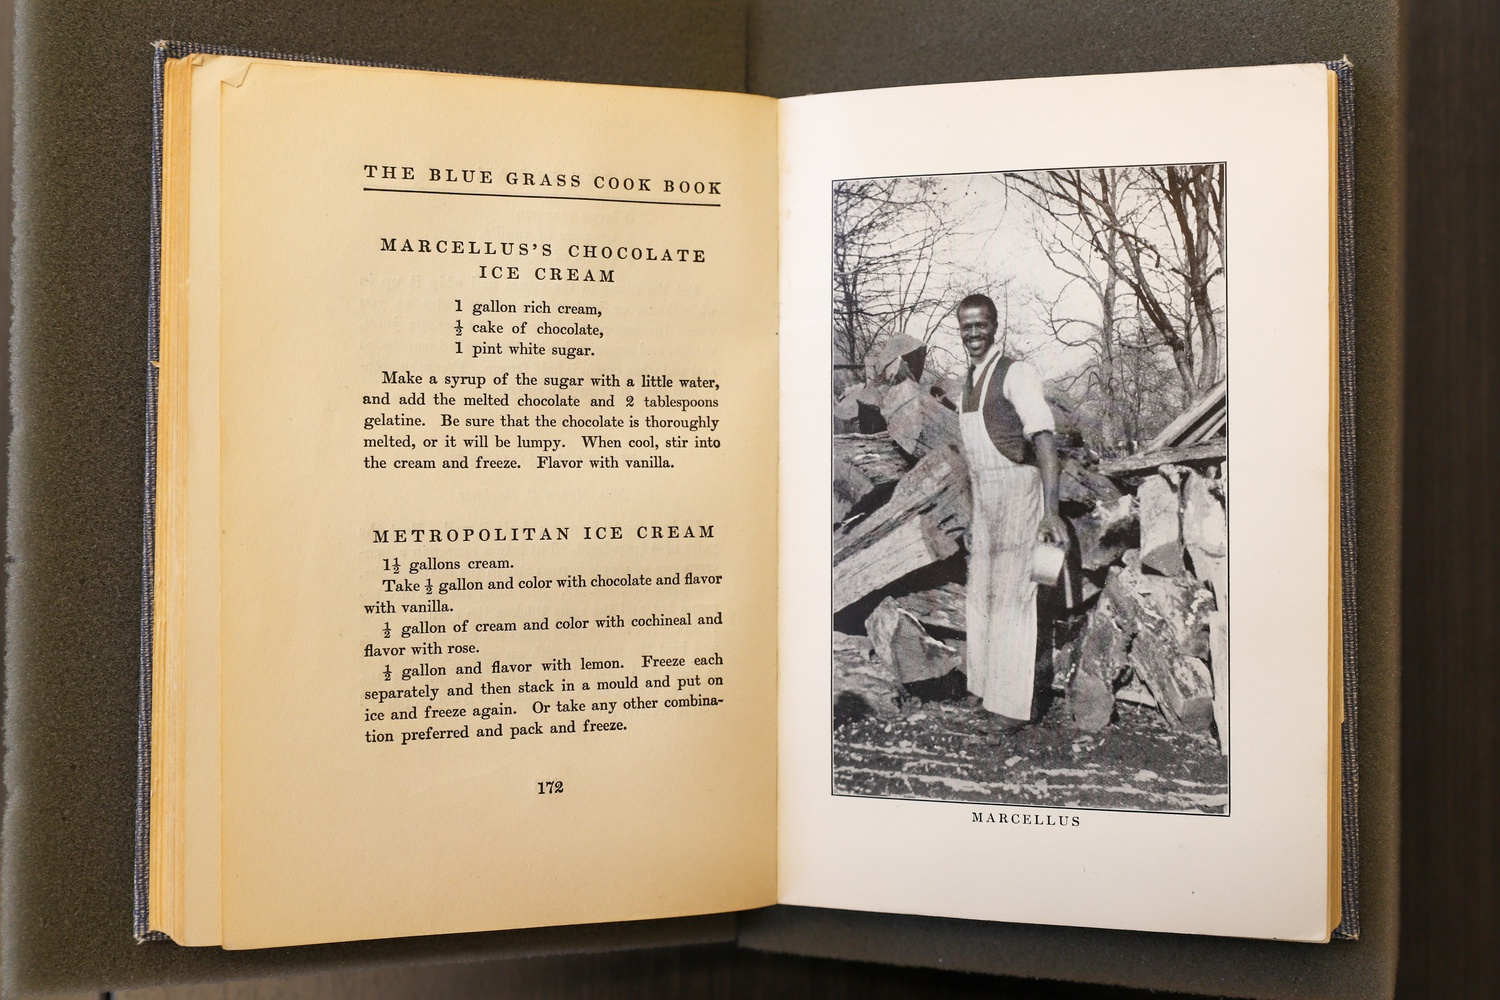 The Blue Grass Cookbook was the first book to directly acknowledge African American cooks for creating recipes that came to be known as Southern hospitality. Many of the cooks were not named even though the cookbook contains their portraits; however, Marcellus's ice cream recipes were properly attributed.